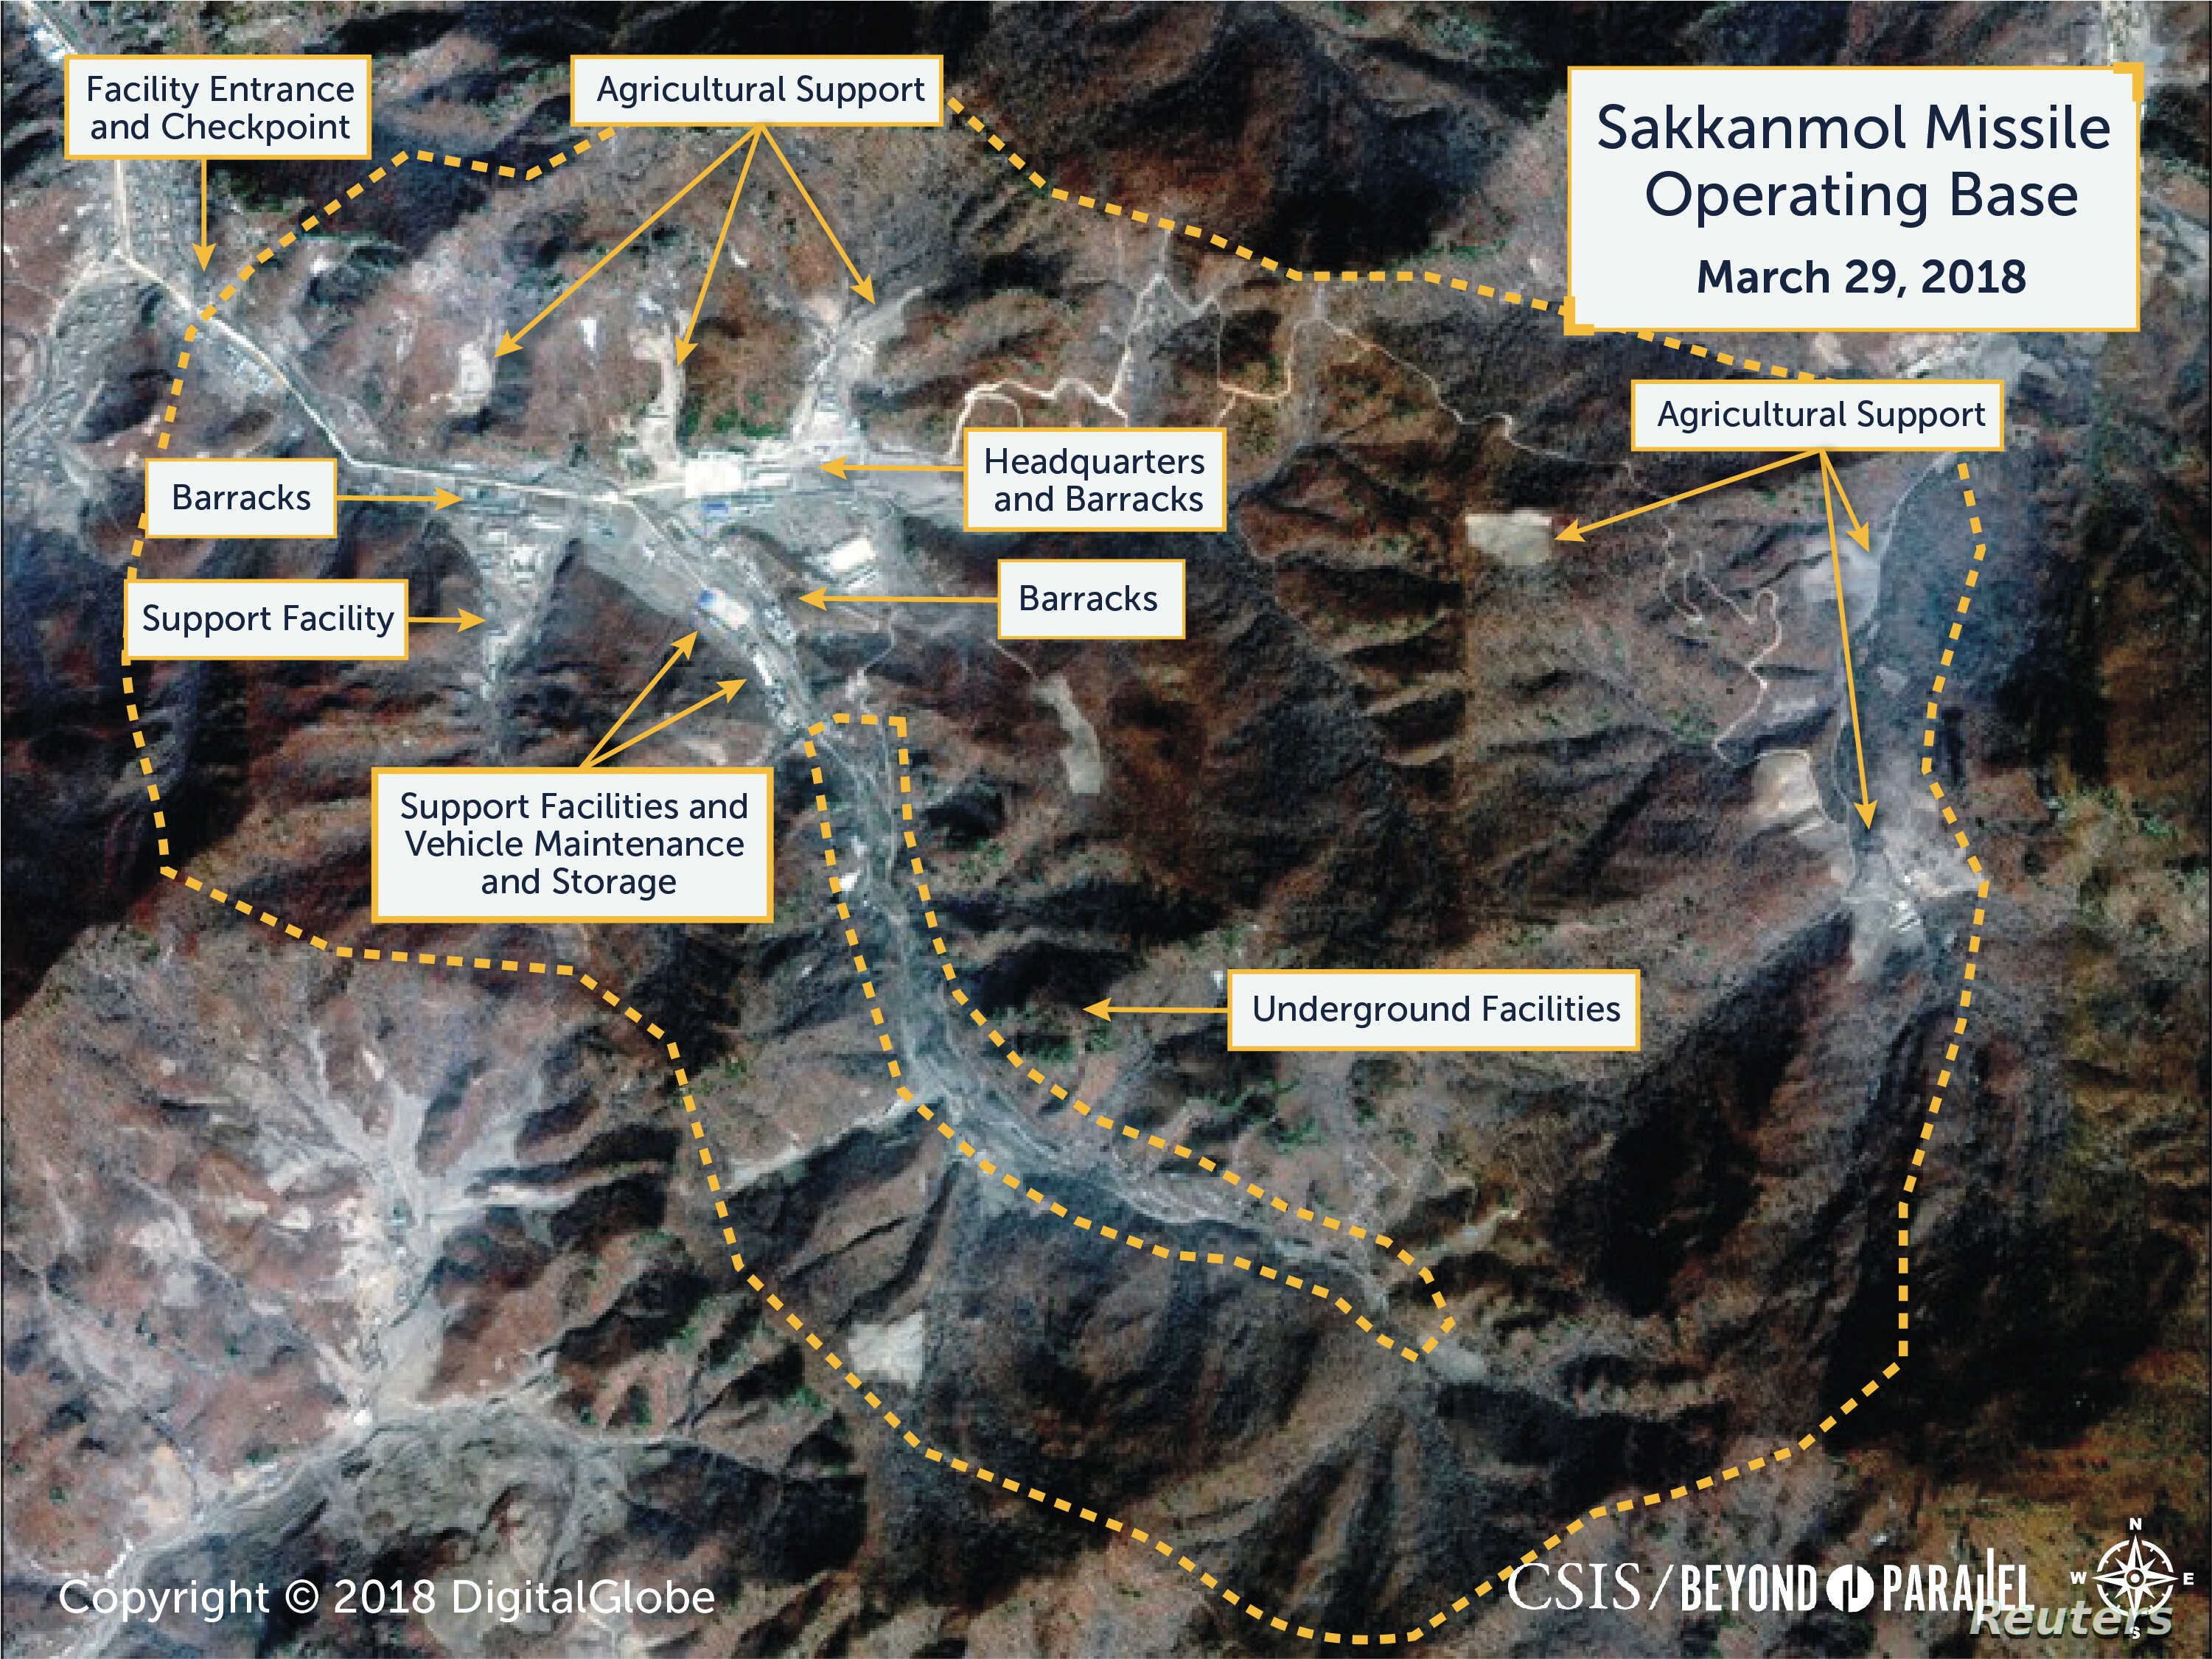 A Digital Globe satellite image taken March 29, 2018 shows what CSIS' Beyond Parallel project reports is an undeclared missile operating base at Sakkanmol, North Korea and provided to Reuters on Nov. 12, 2018.